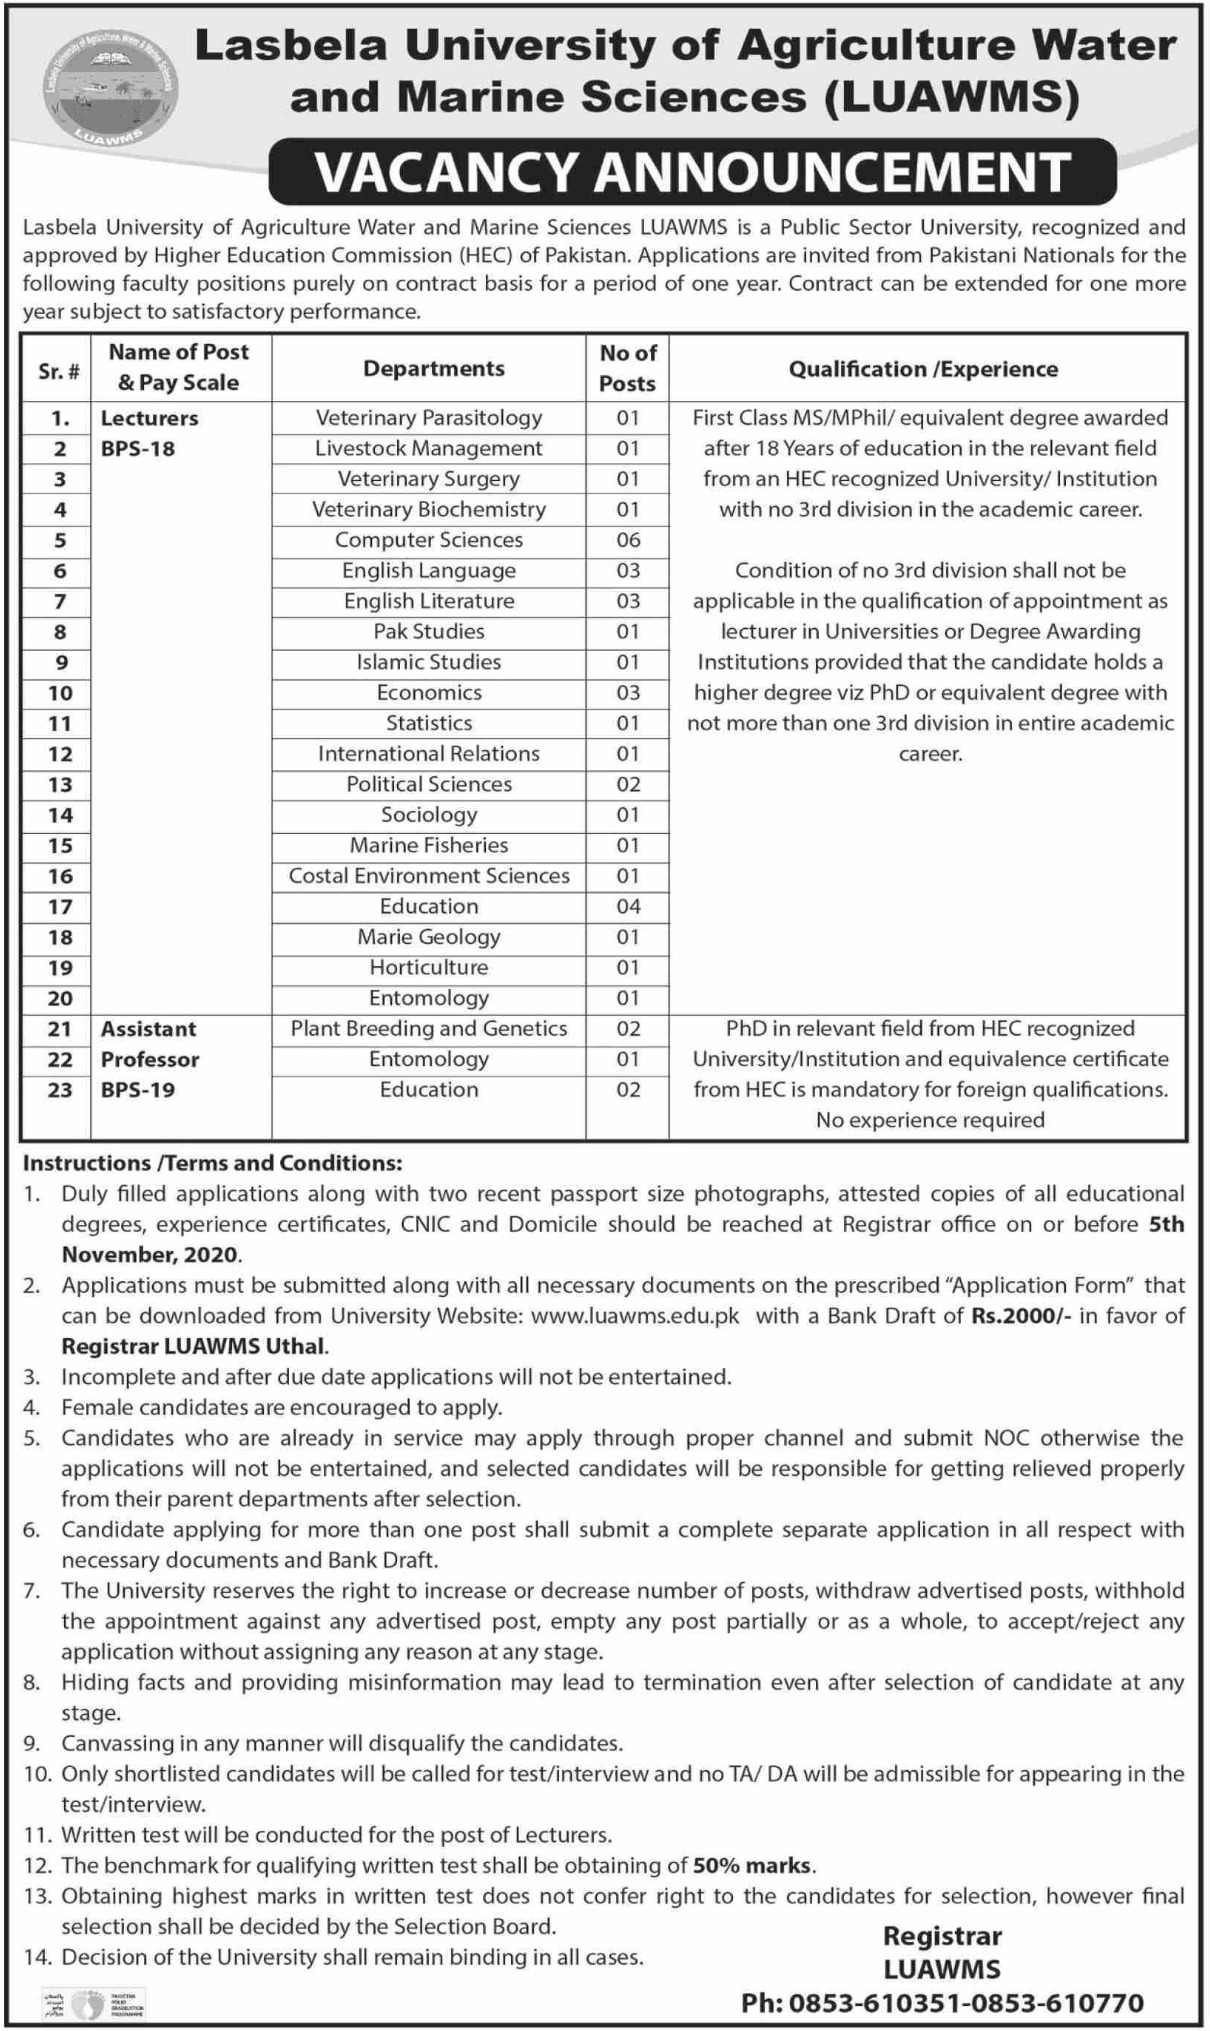 Lasbela University of Agriculture Water & Marine Sciences Jobs October 2020